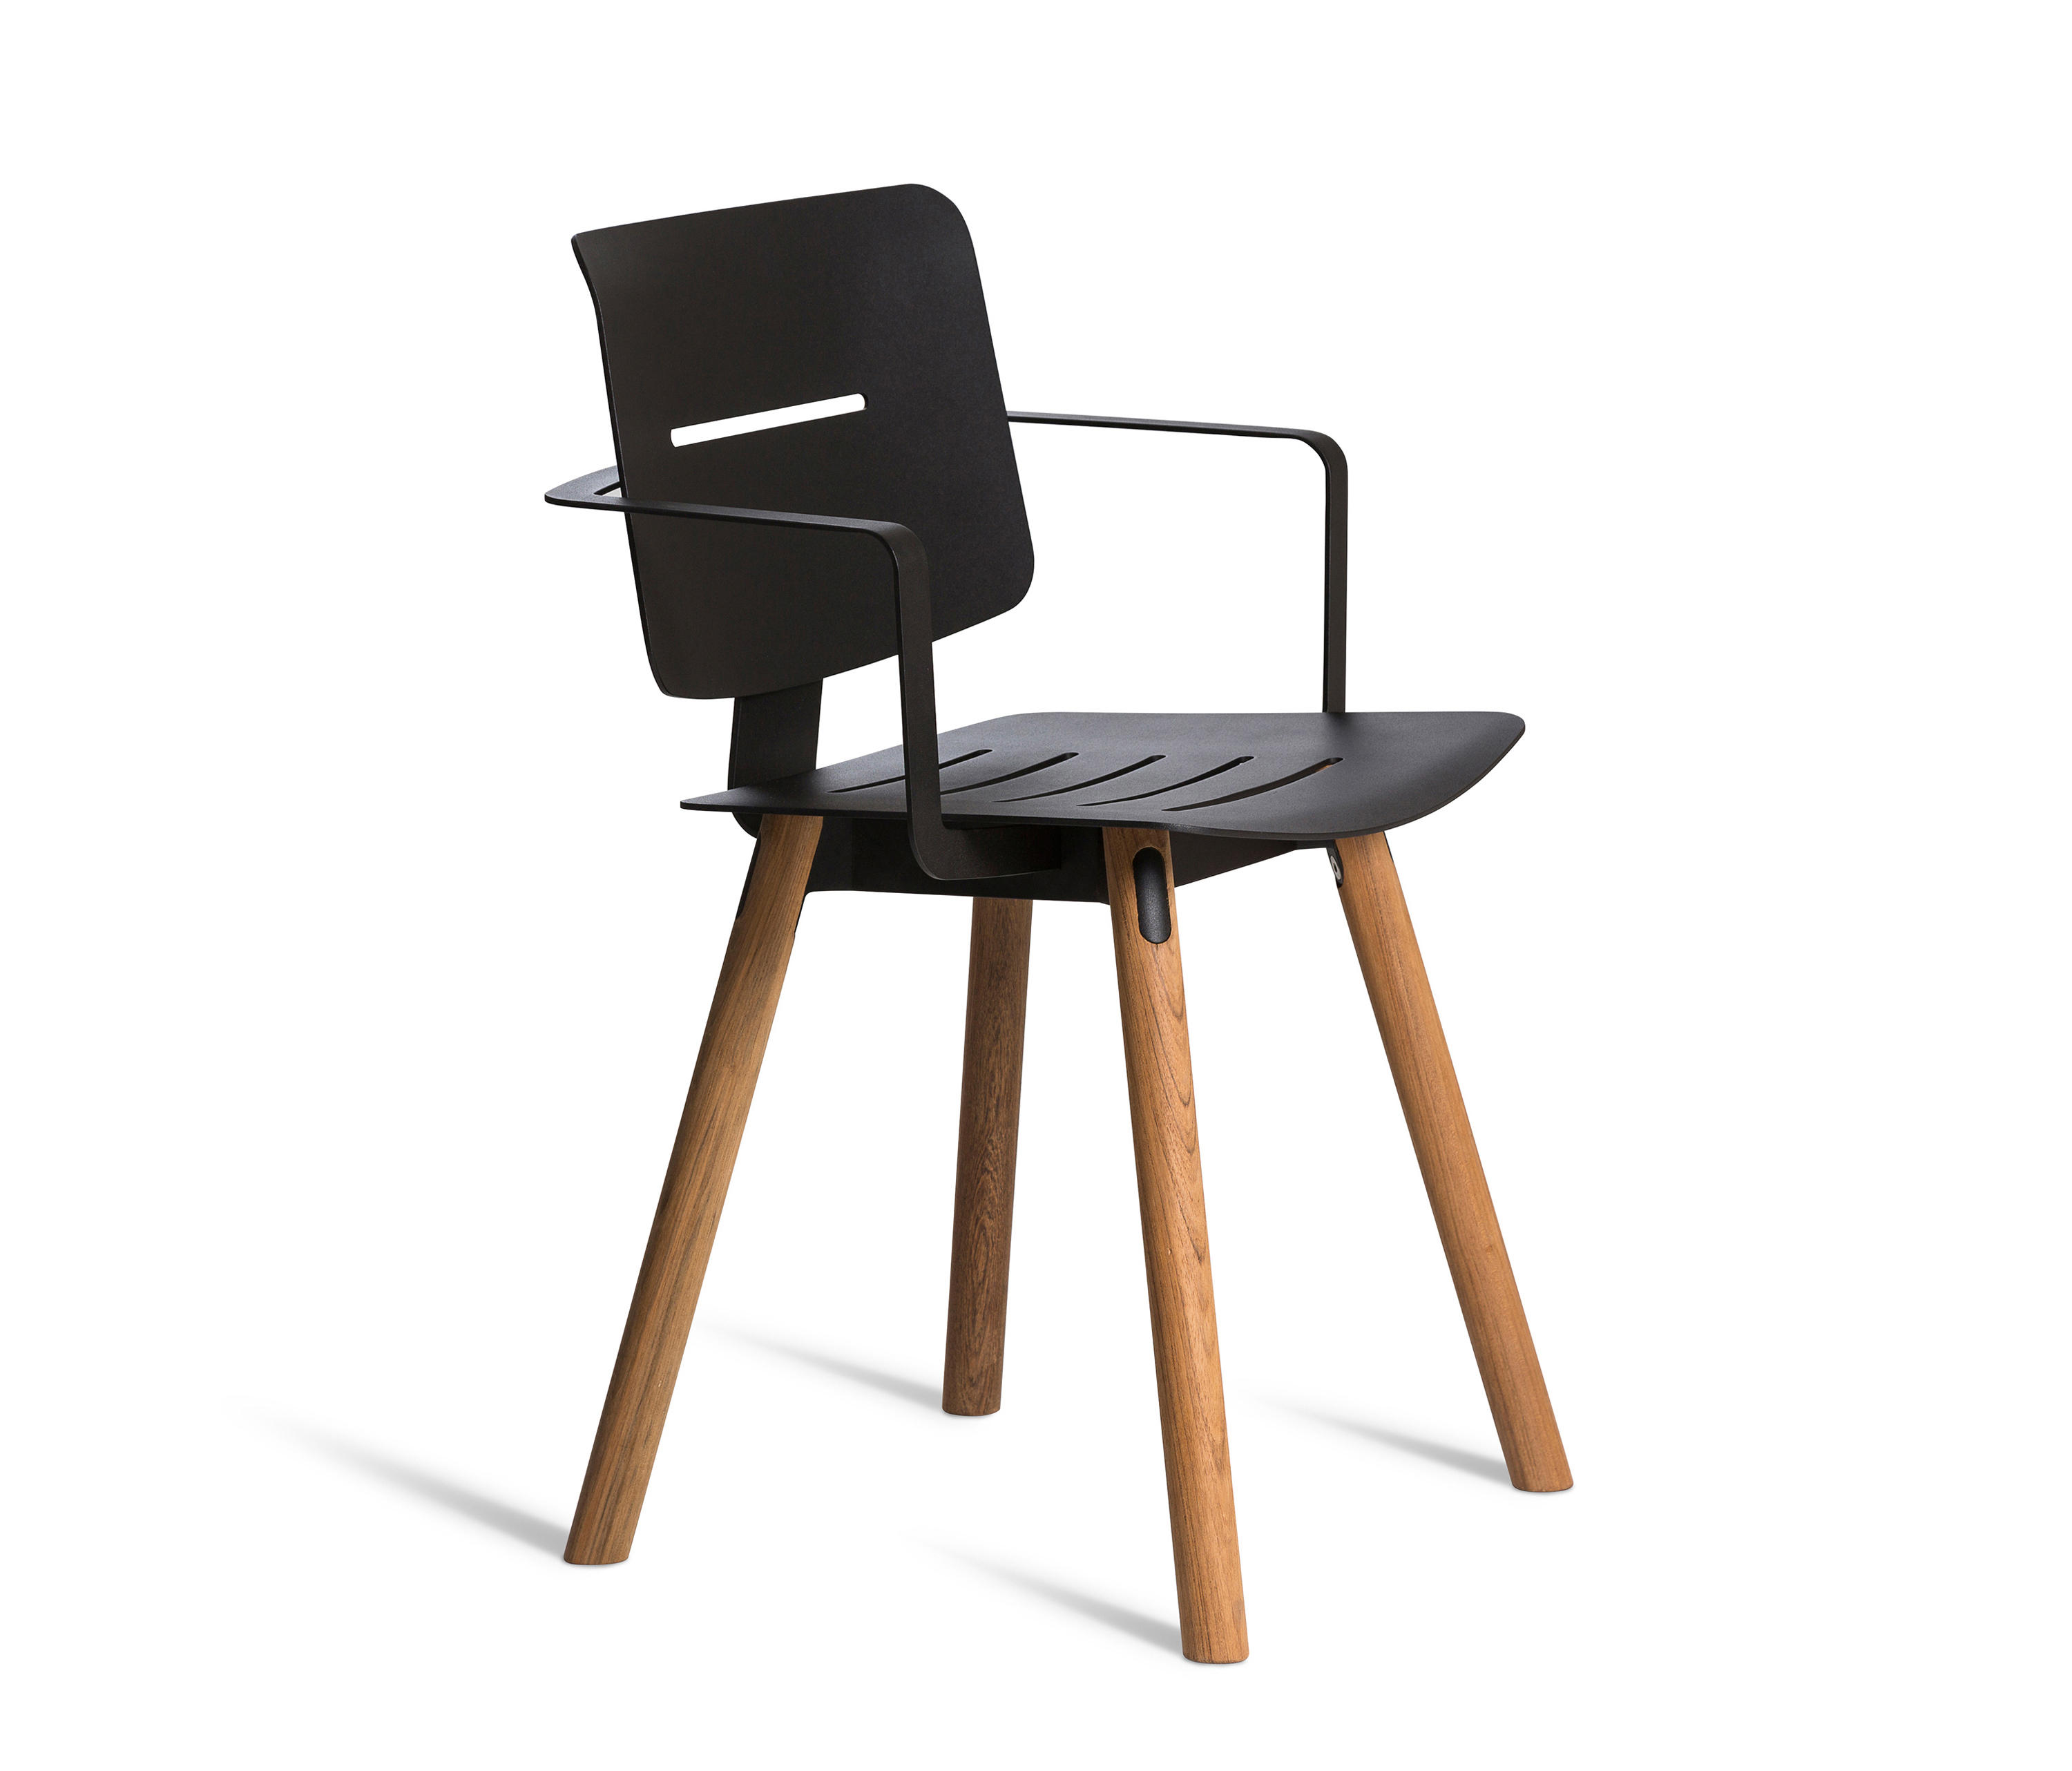 Sensational Coco Armchair Chairs From Oasiq Architonic Caraccident5 Cool Chair Designs And Ideas Caraccident5Info